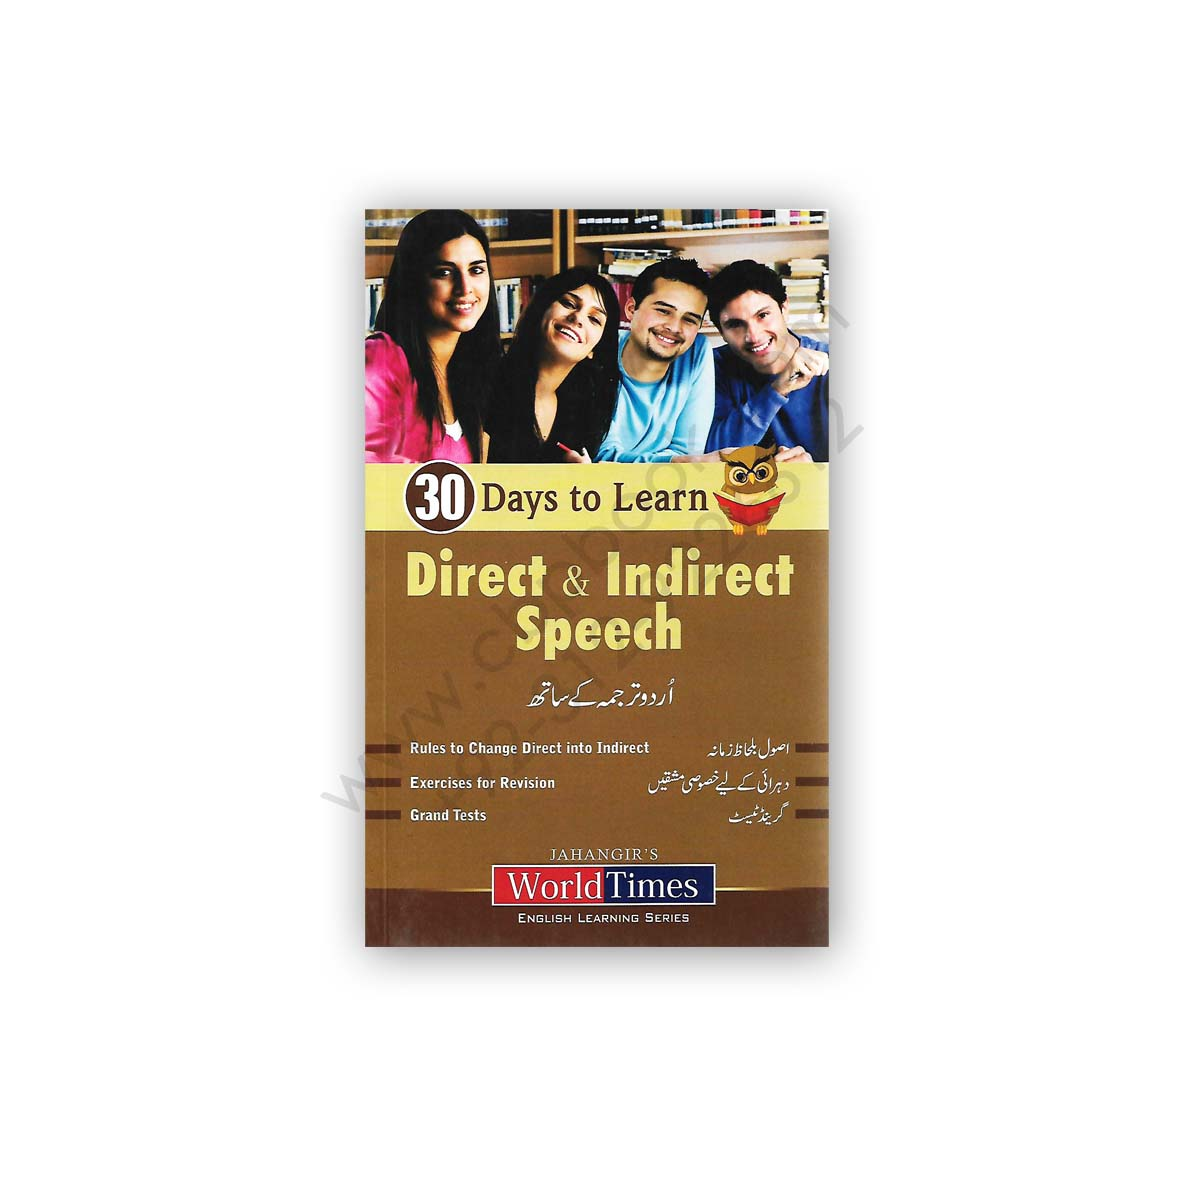 30 days to learn direct & indirect speech - jahangirs worldtimes